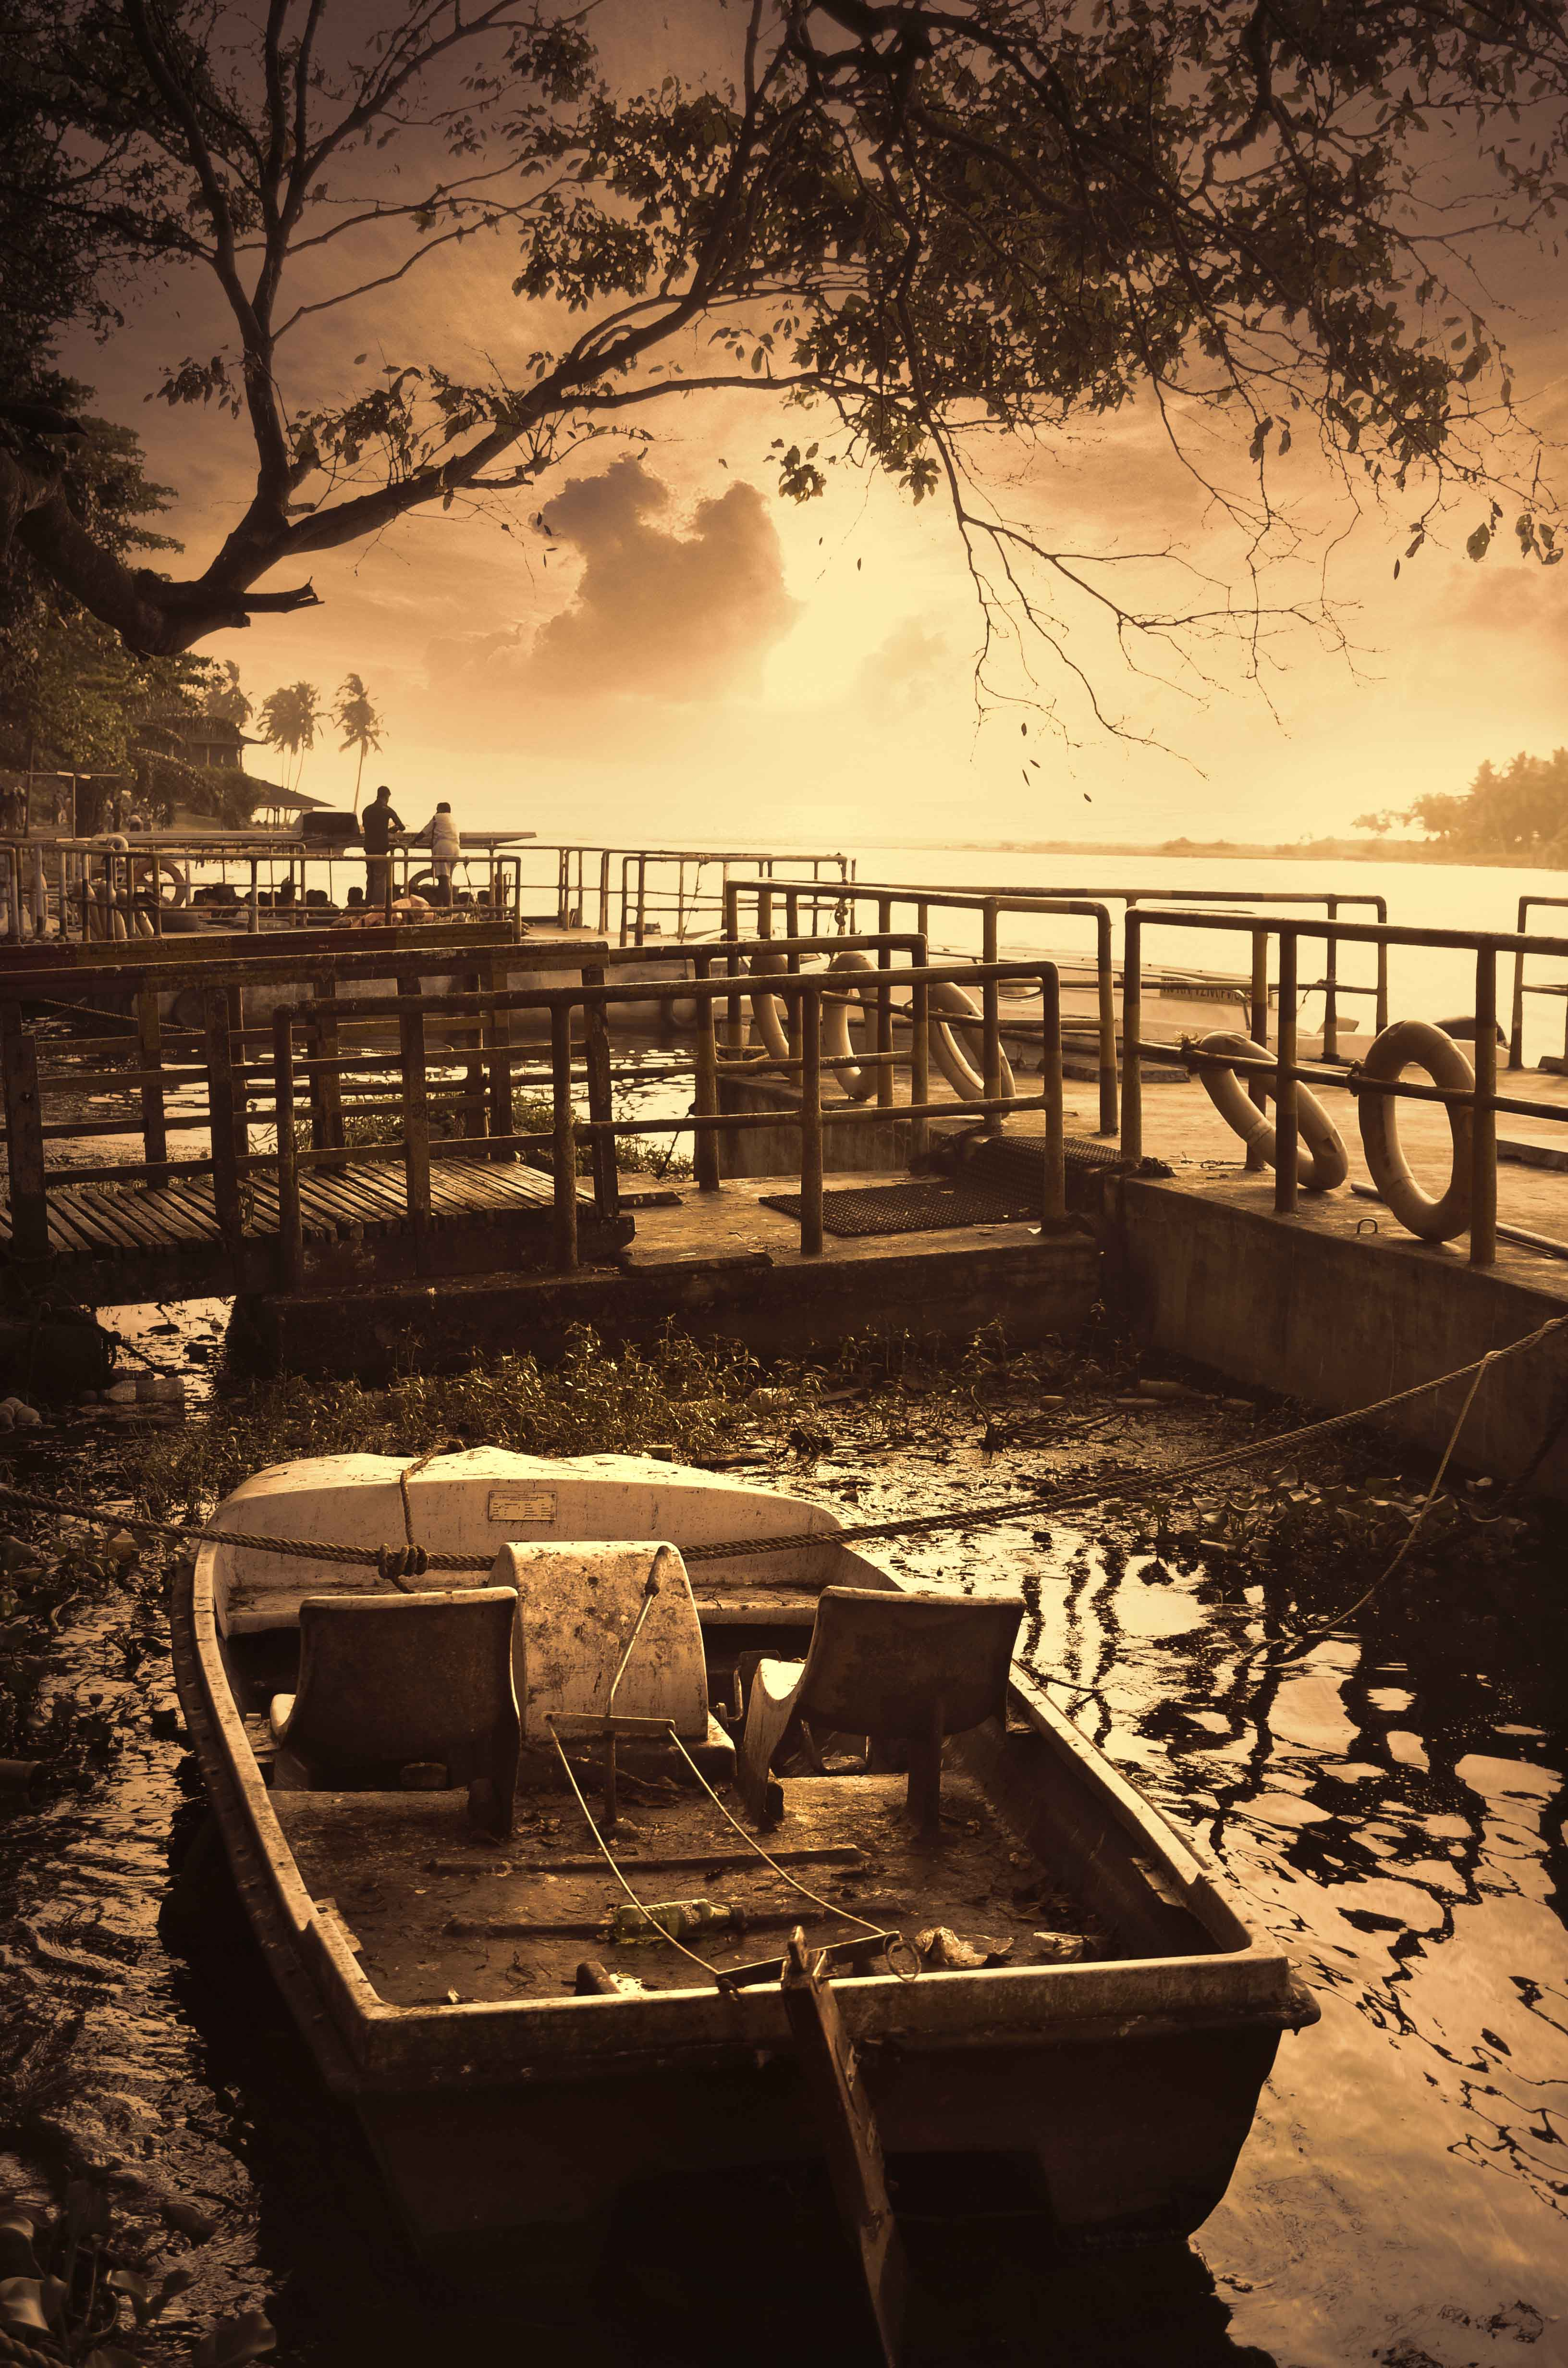 Old broken and tied up boat in River, Boat, Broken, Damage, Evening, HQ Photo